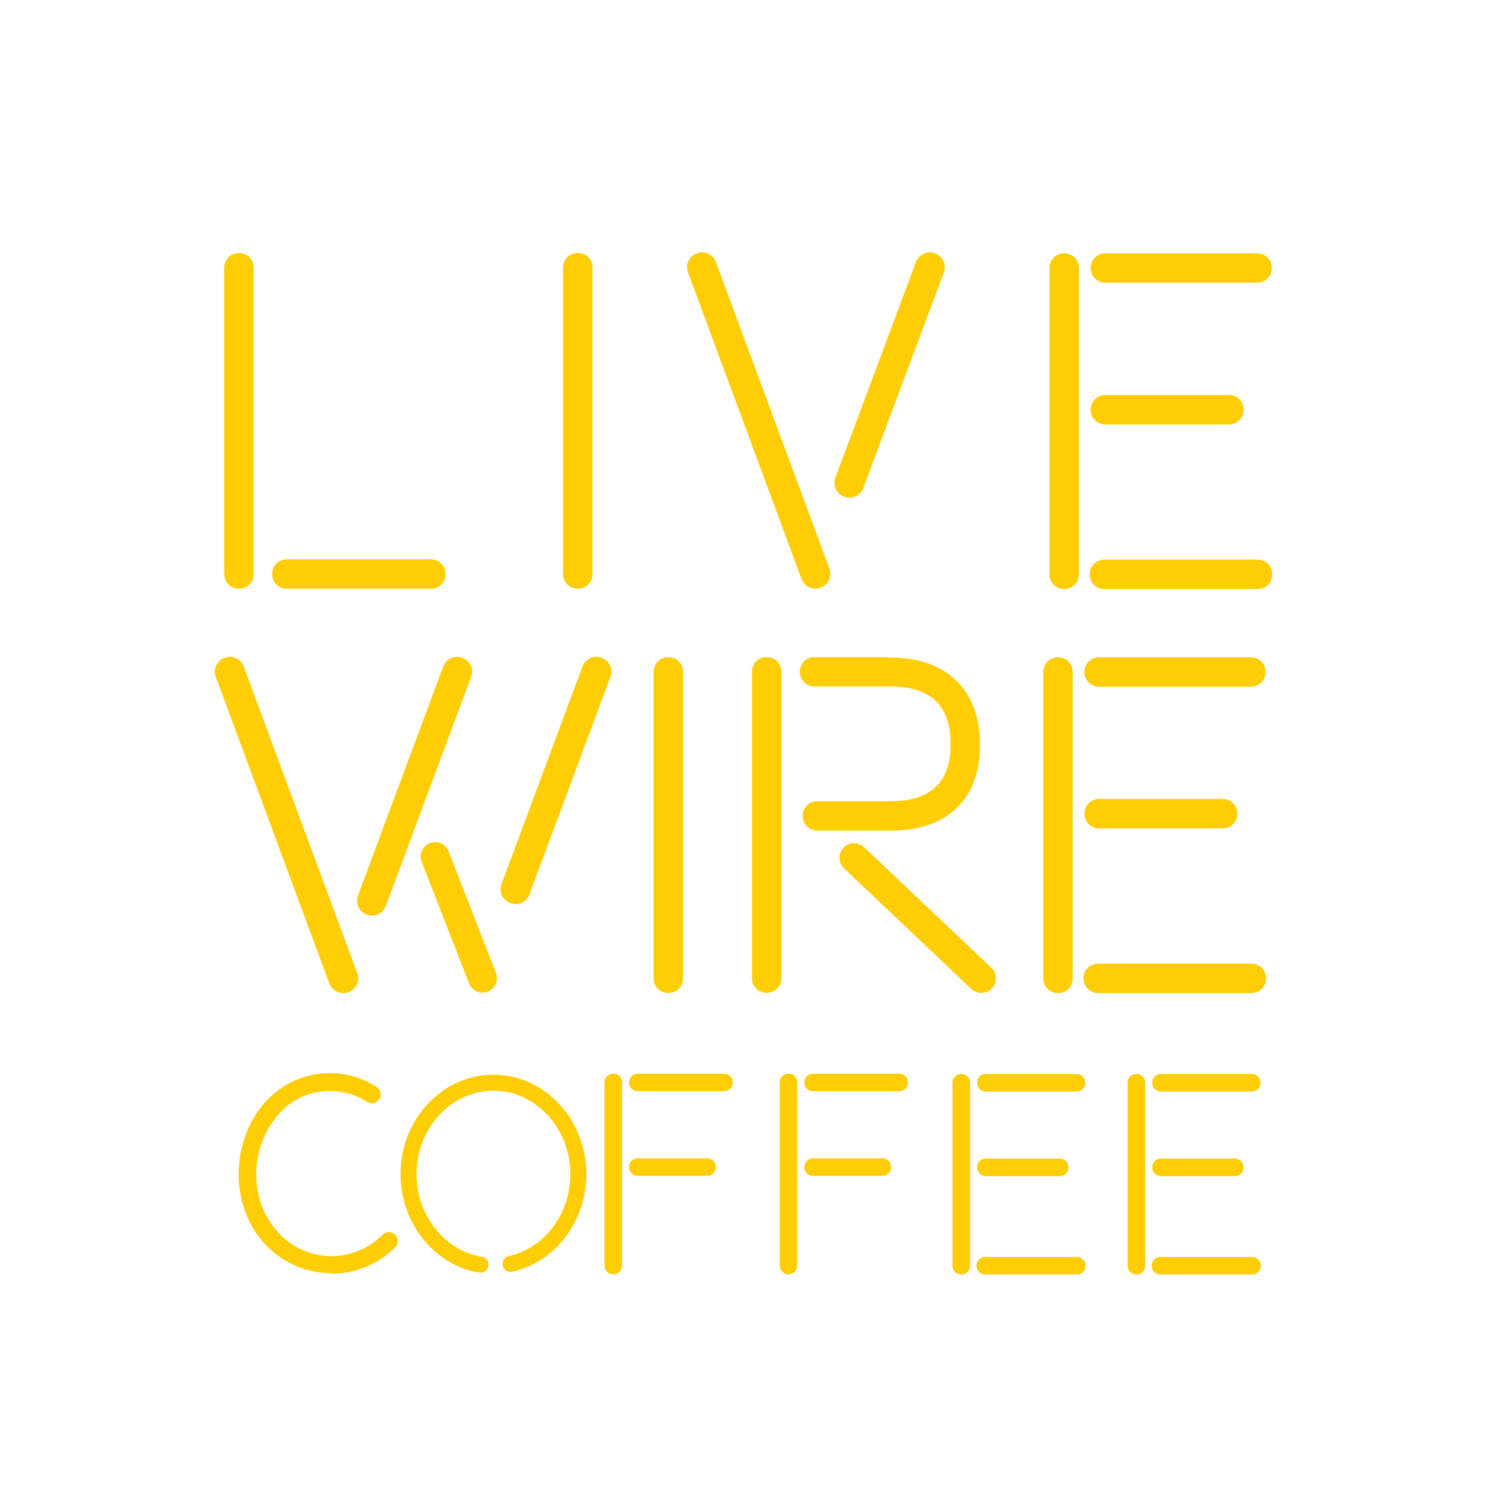 Atlanta Coffee Carts | LiveWire Coffee